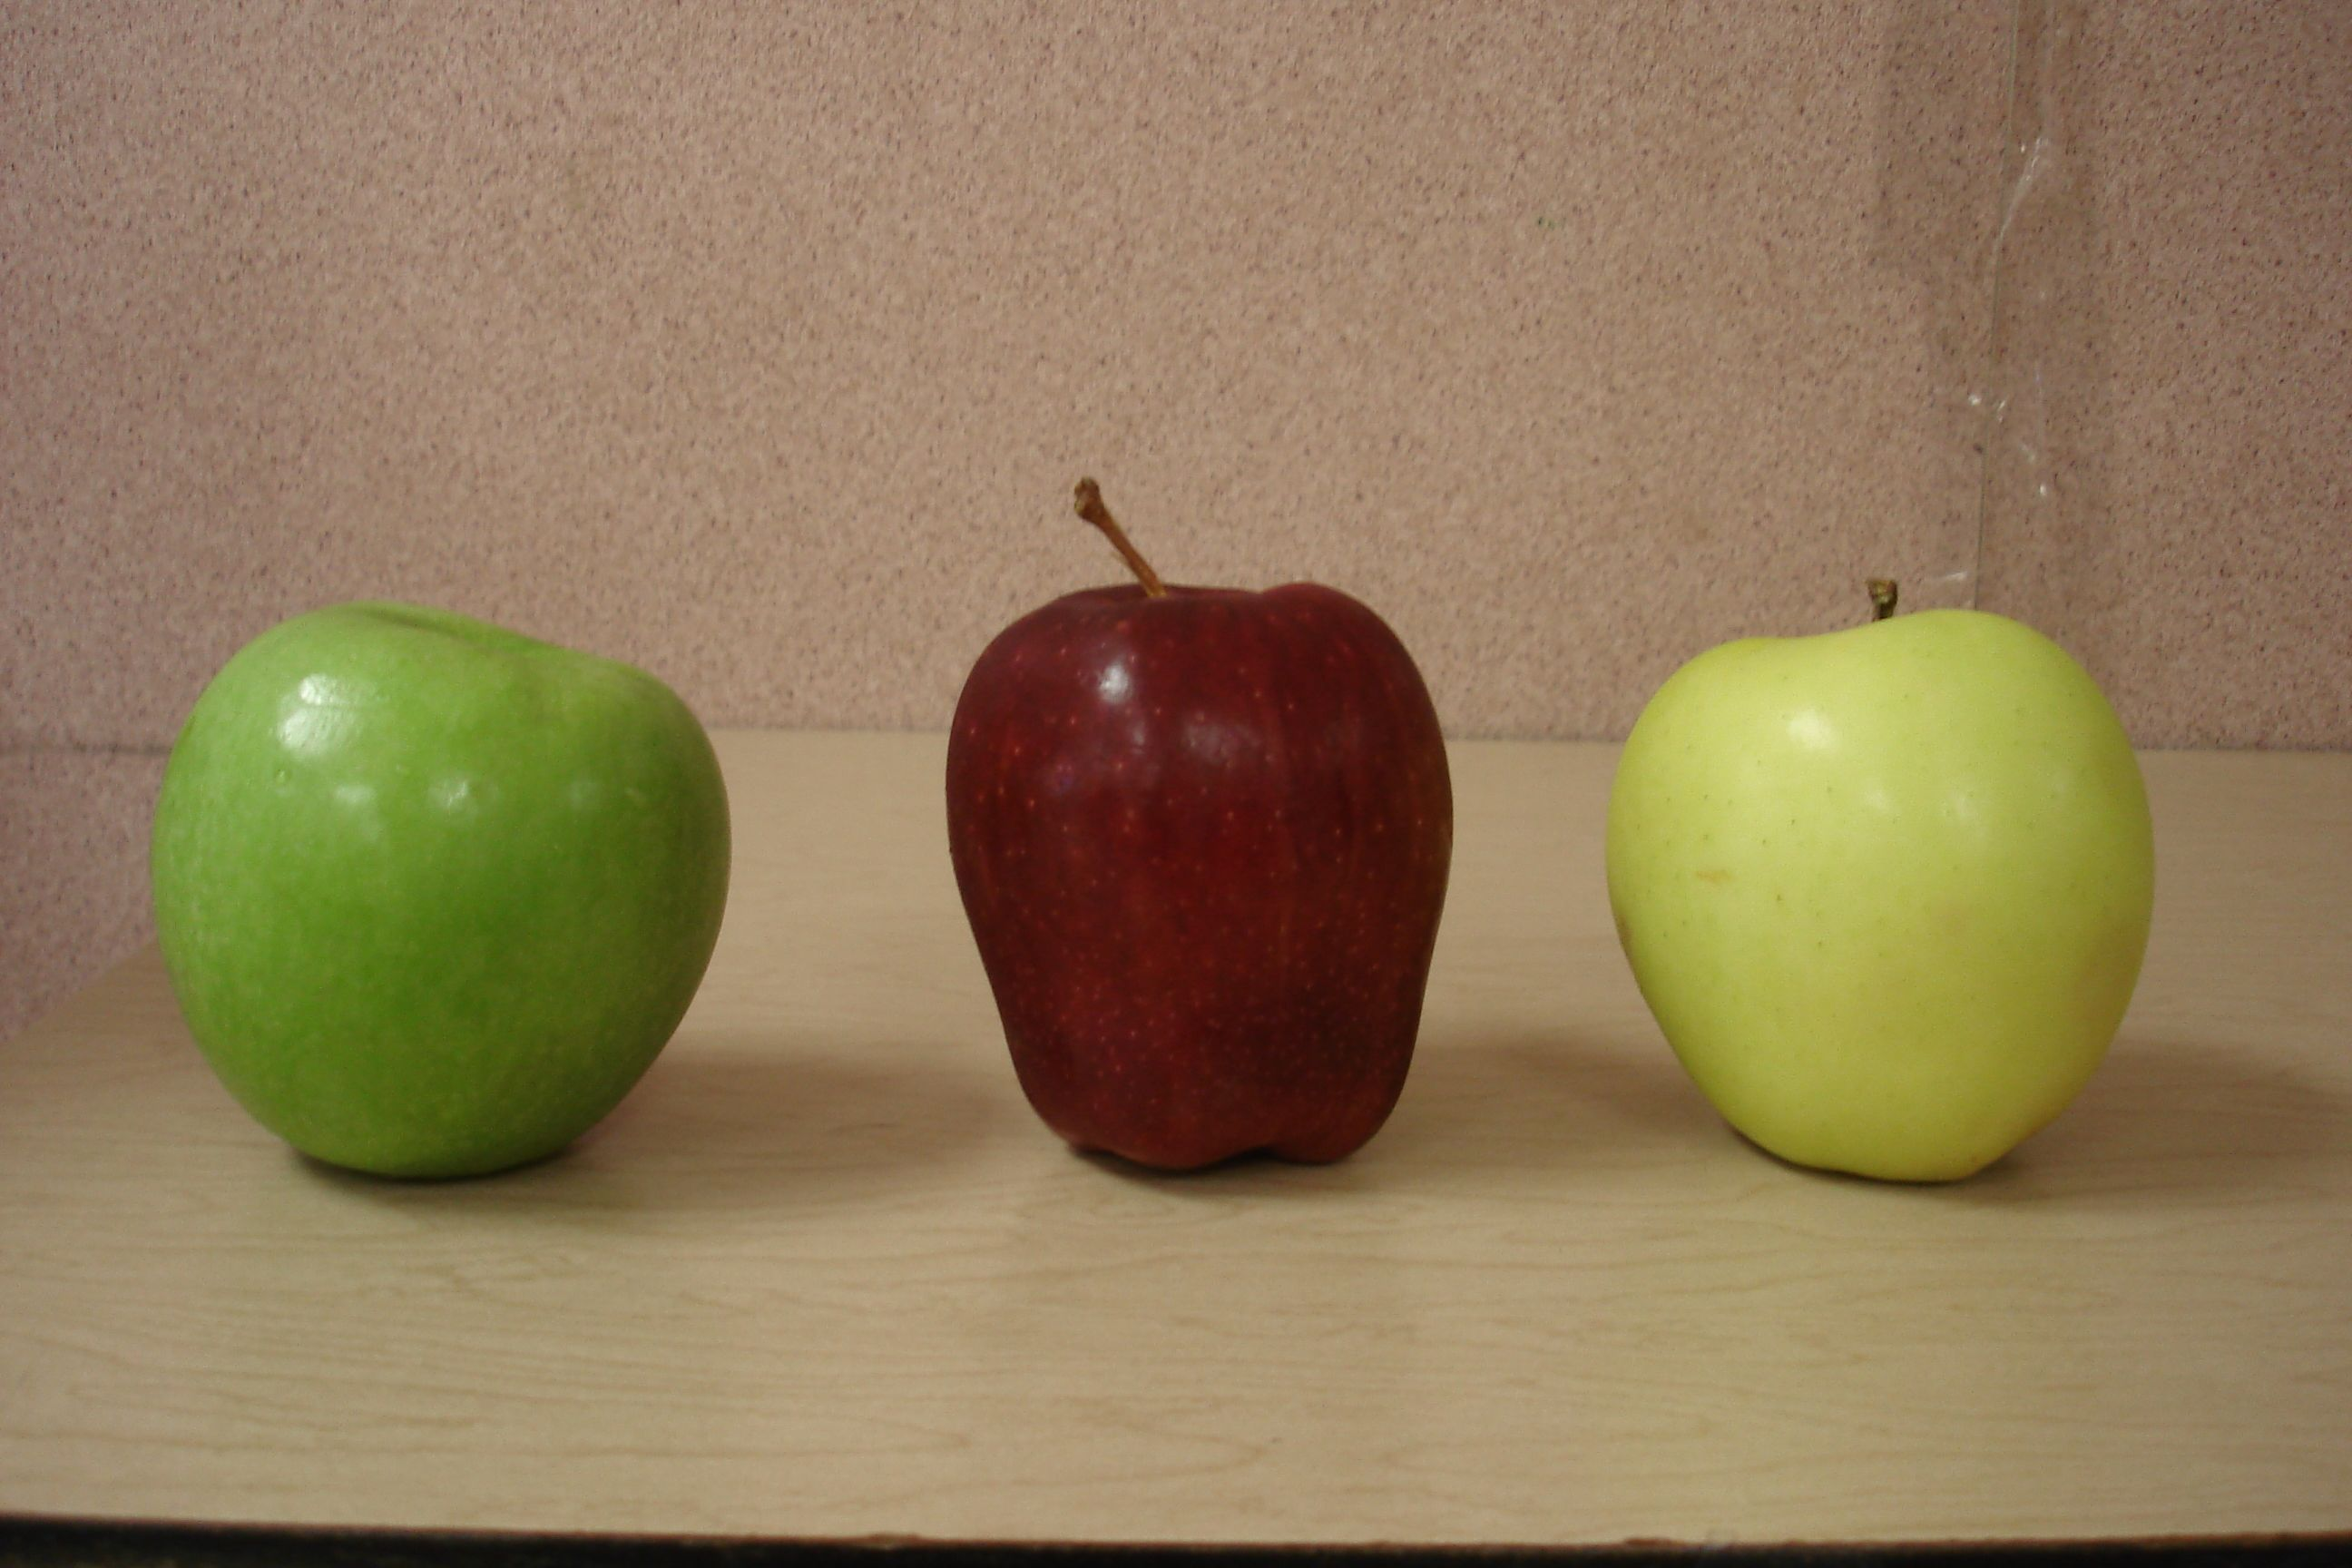 Types of Green Apple's http://mrshunt.edublogs.org/